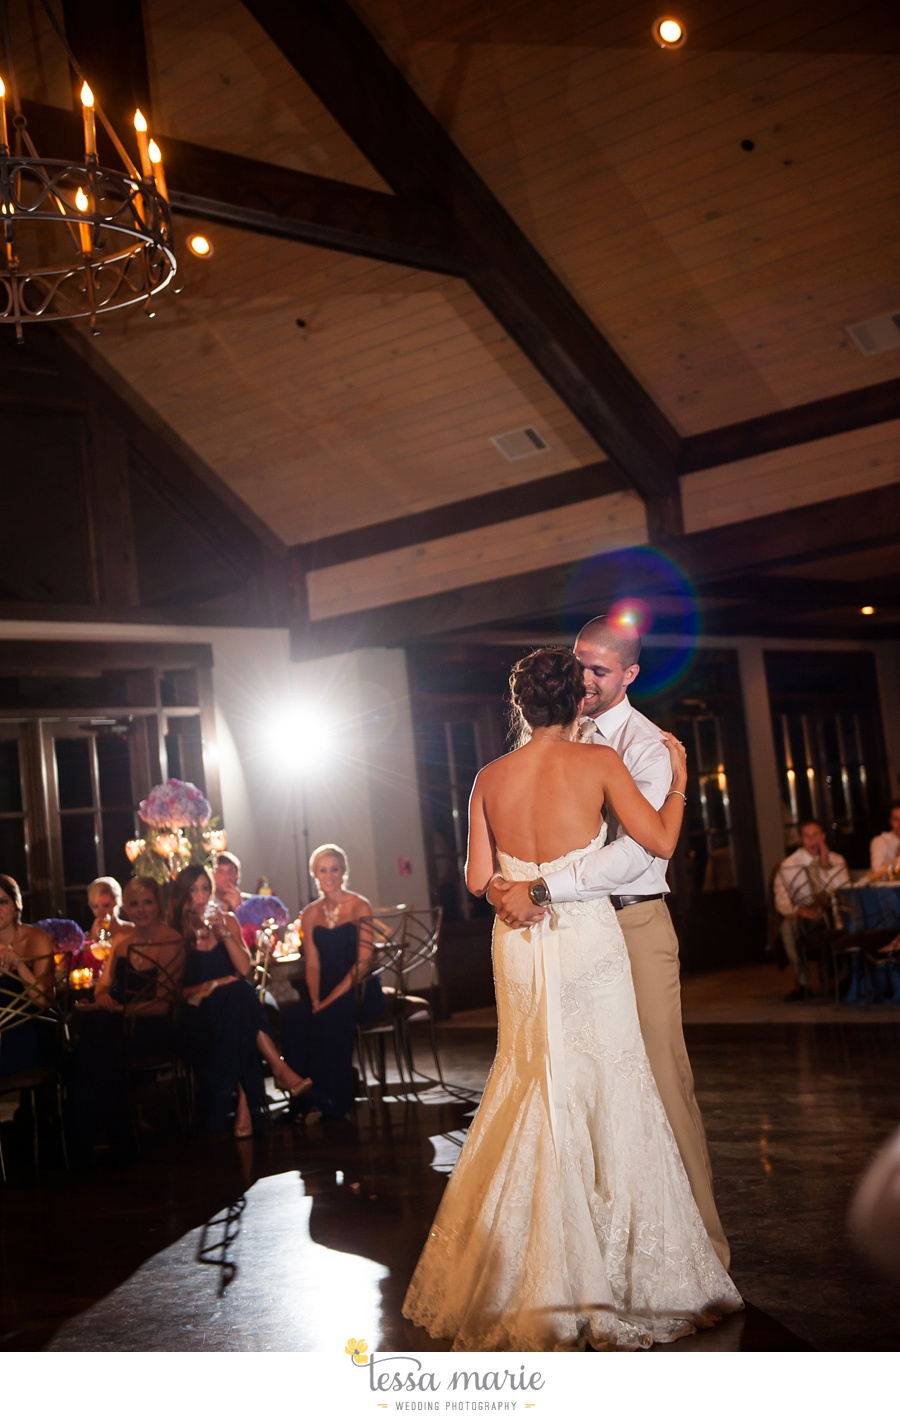 685_foxhall_wedding_outdoor_fall_wedding_andy_beach_hi_note_a_divine_event_tessa_marie_weddings_photography_wedding_pictures